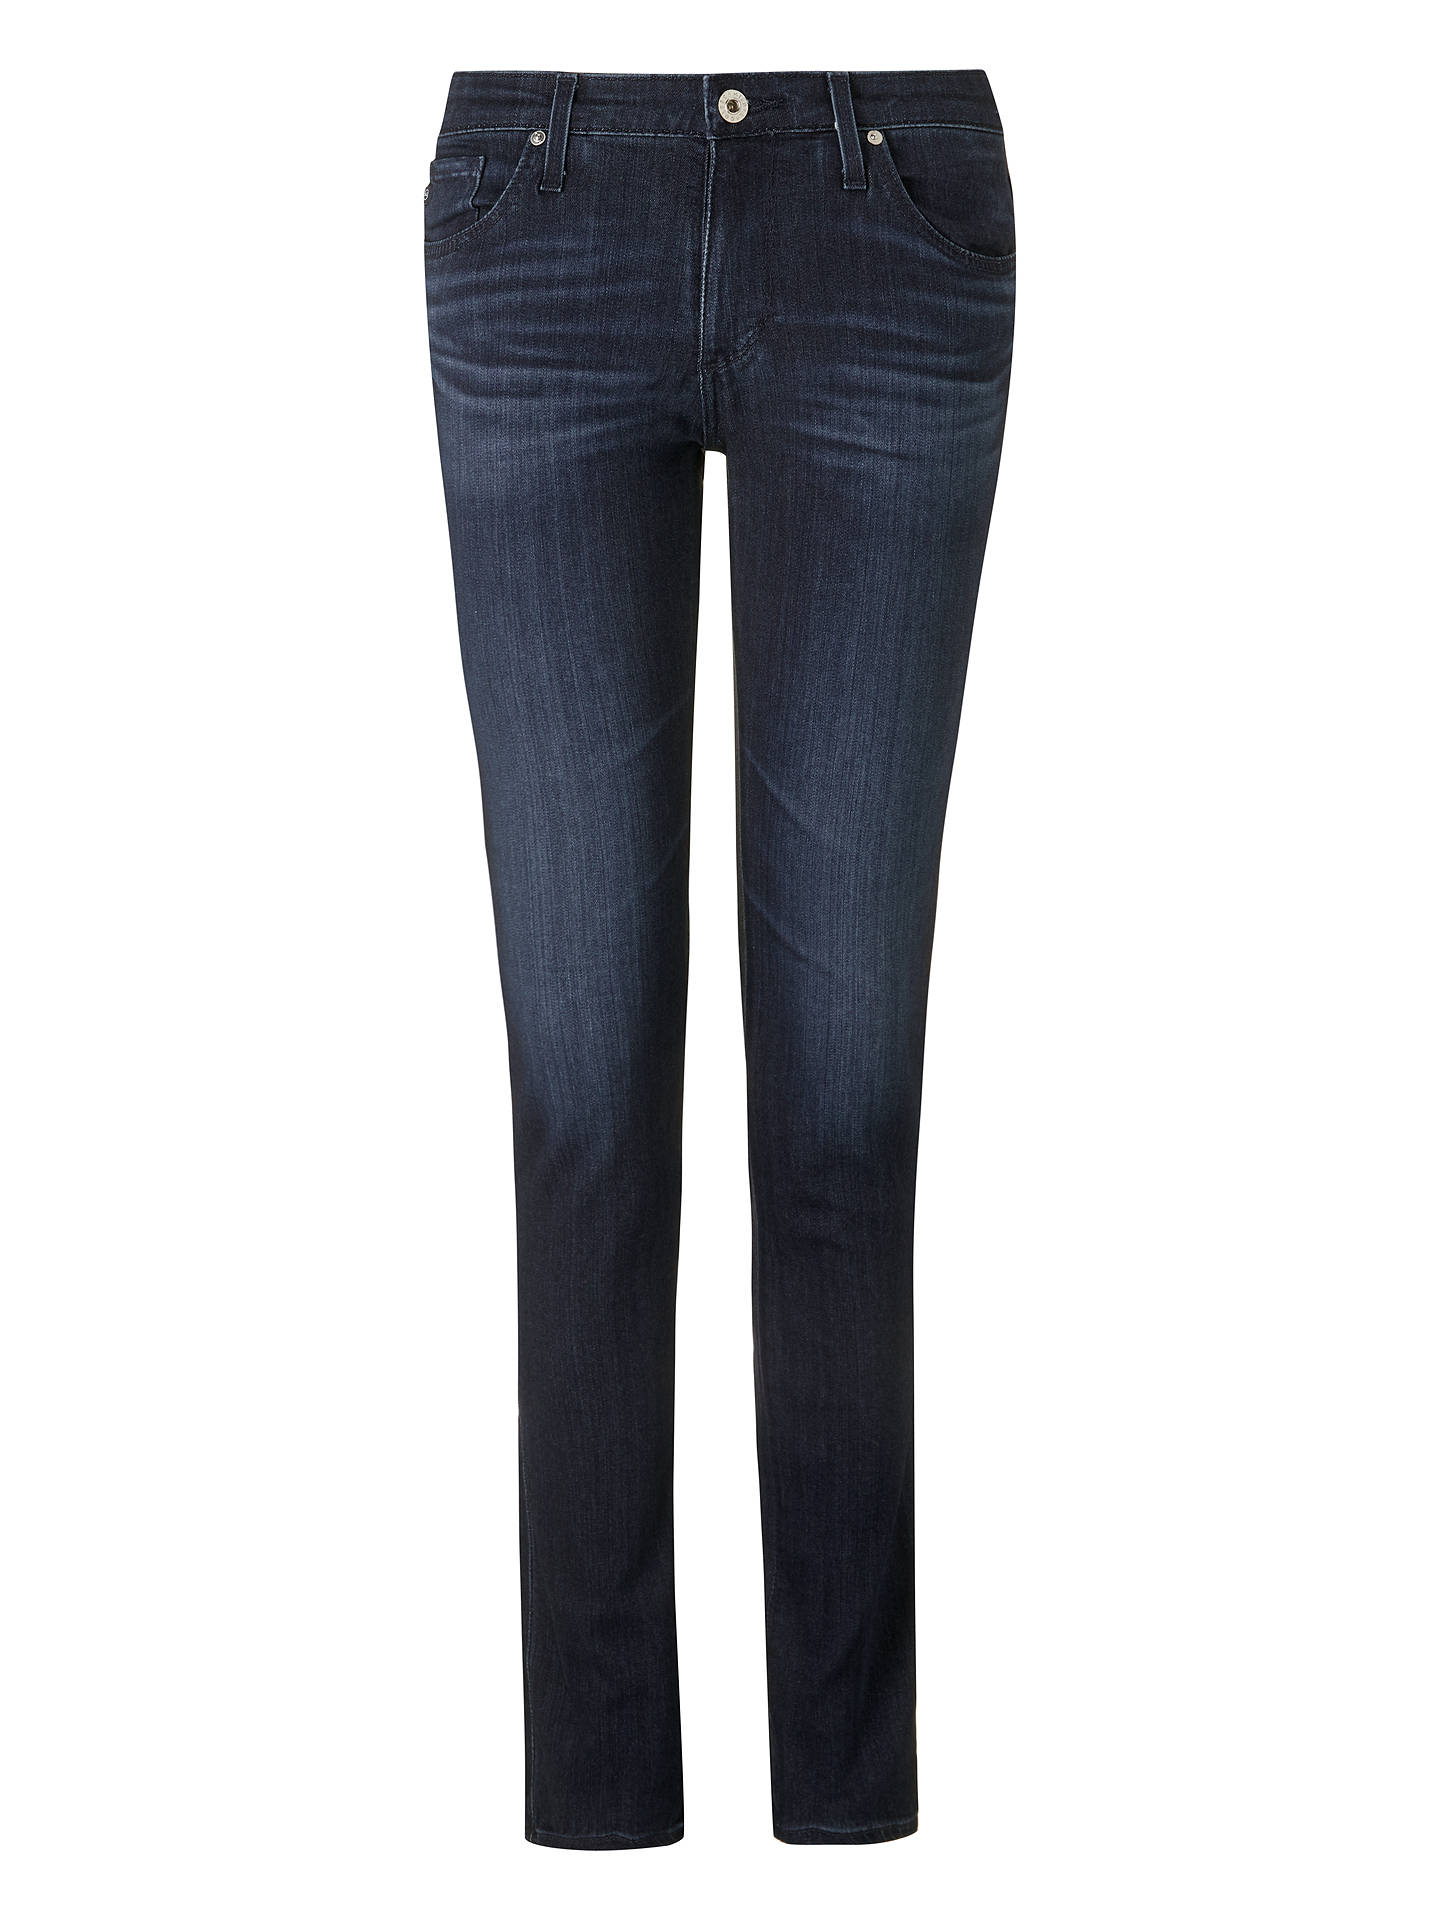 Buy AG The Prima Mid Rise Skinny Jeans, Gallant, 24 Online at johnlewis.com